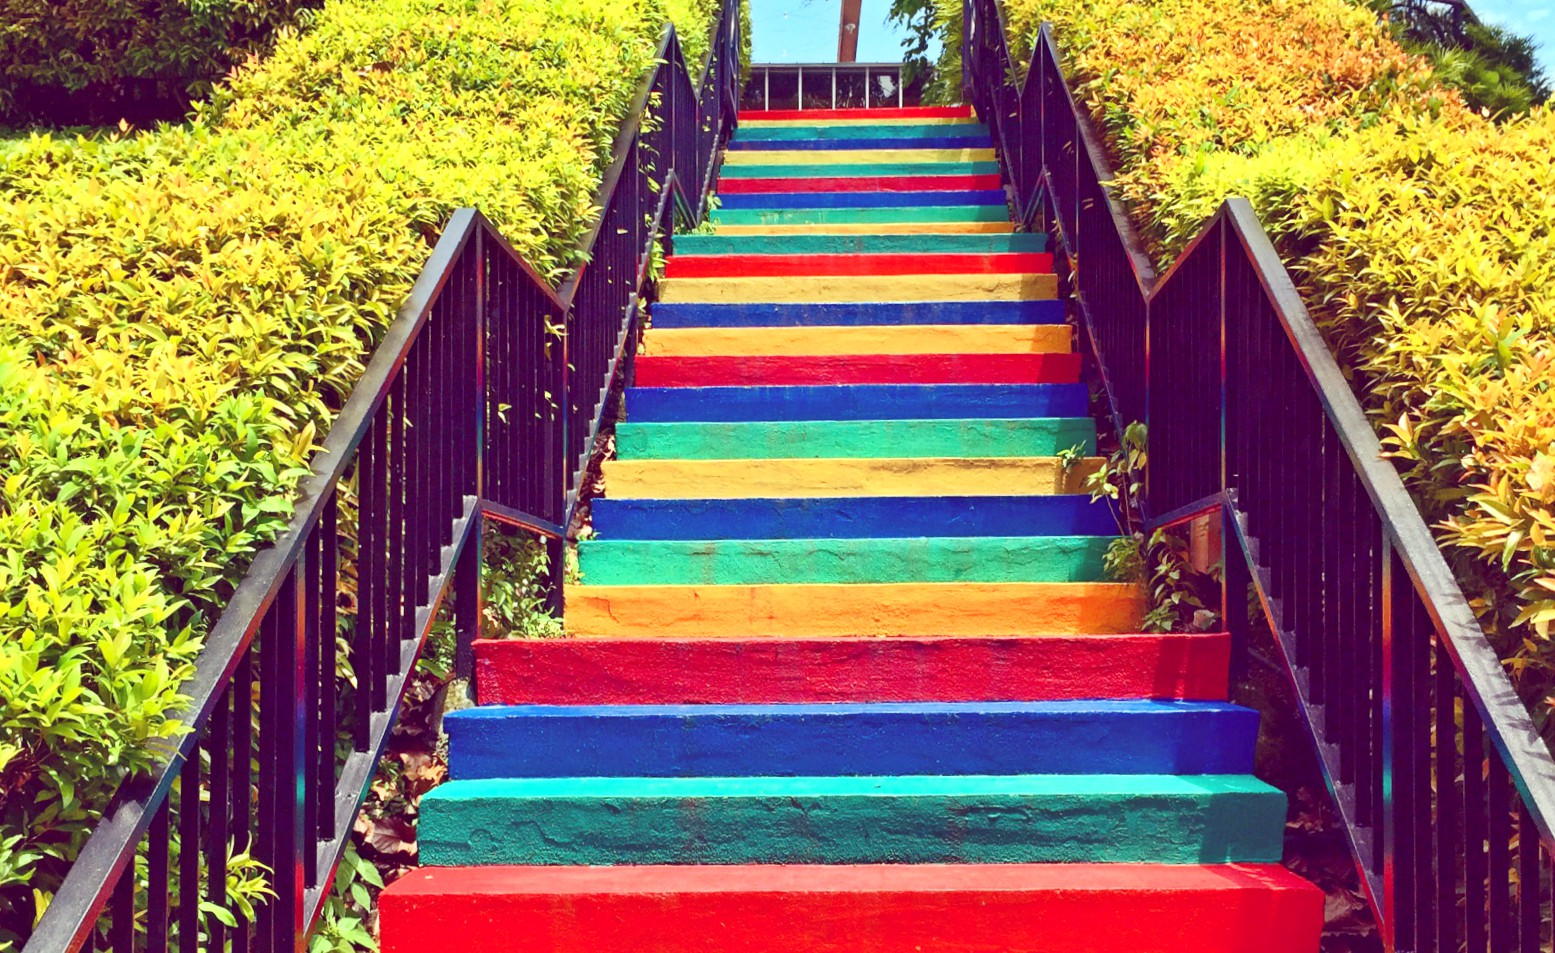 Stairs of Happiness